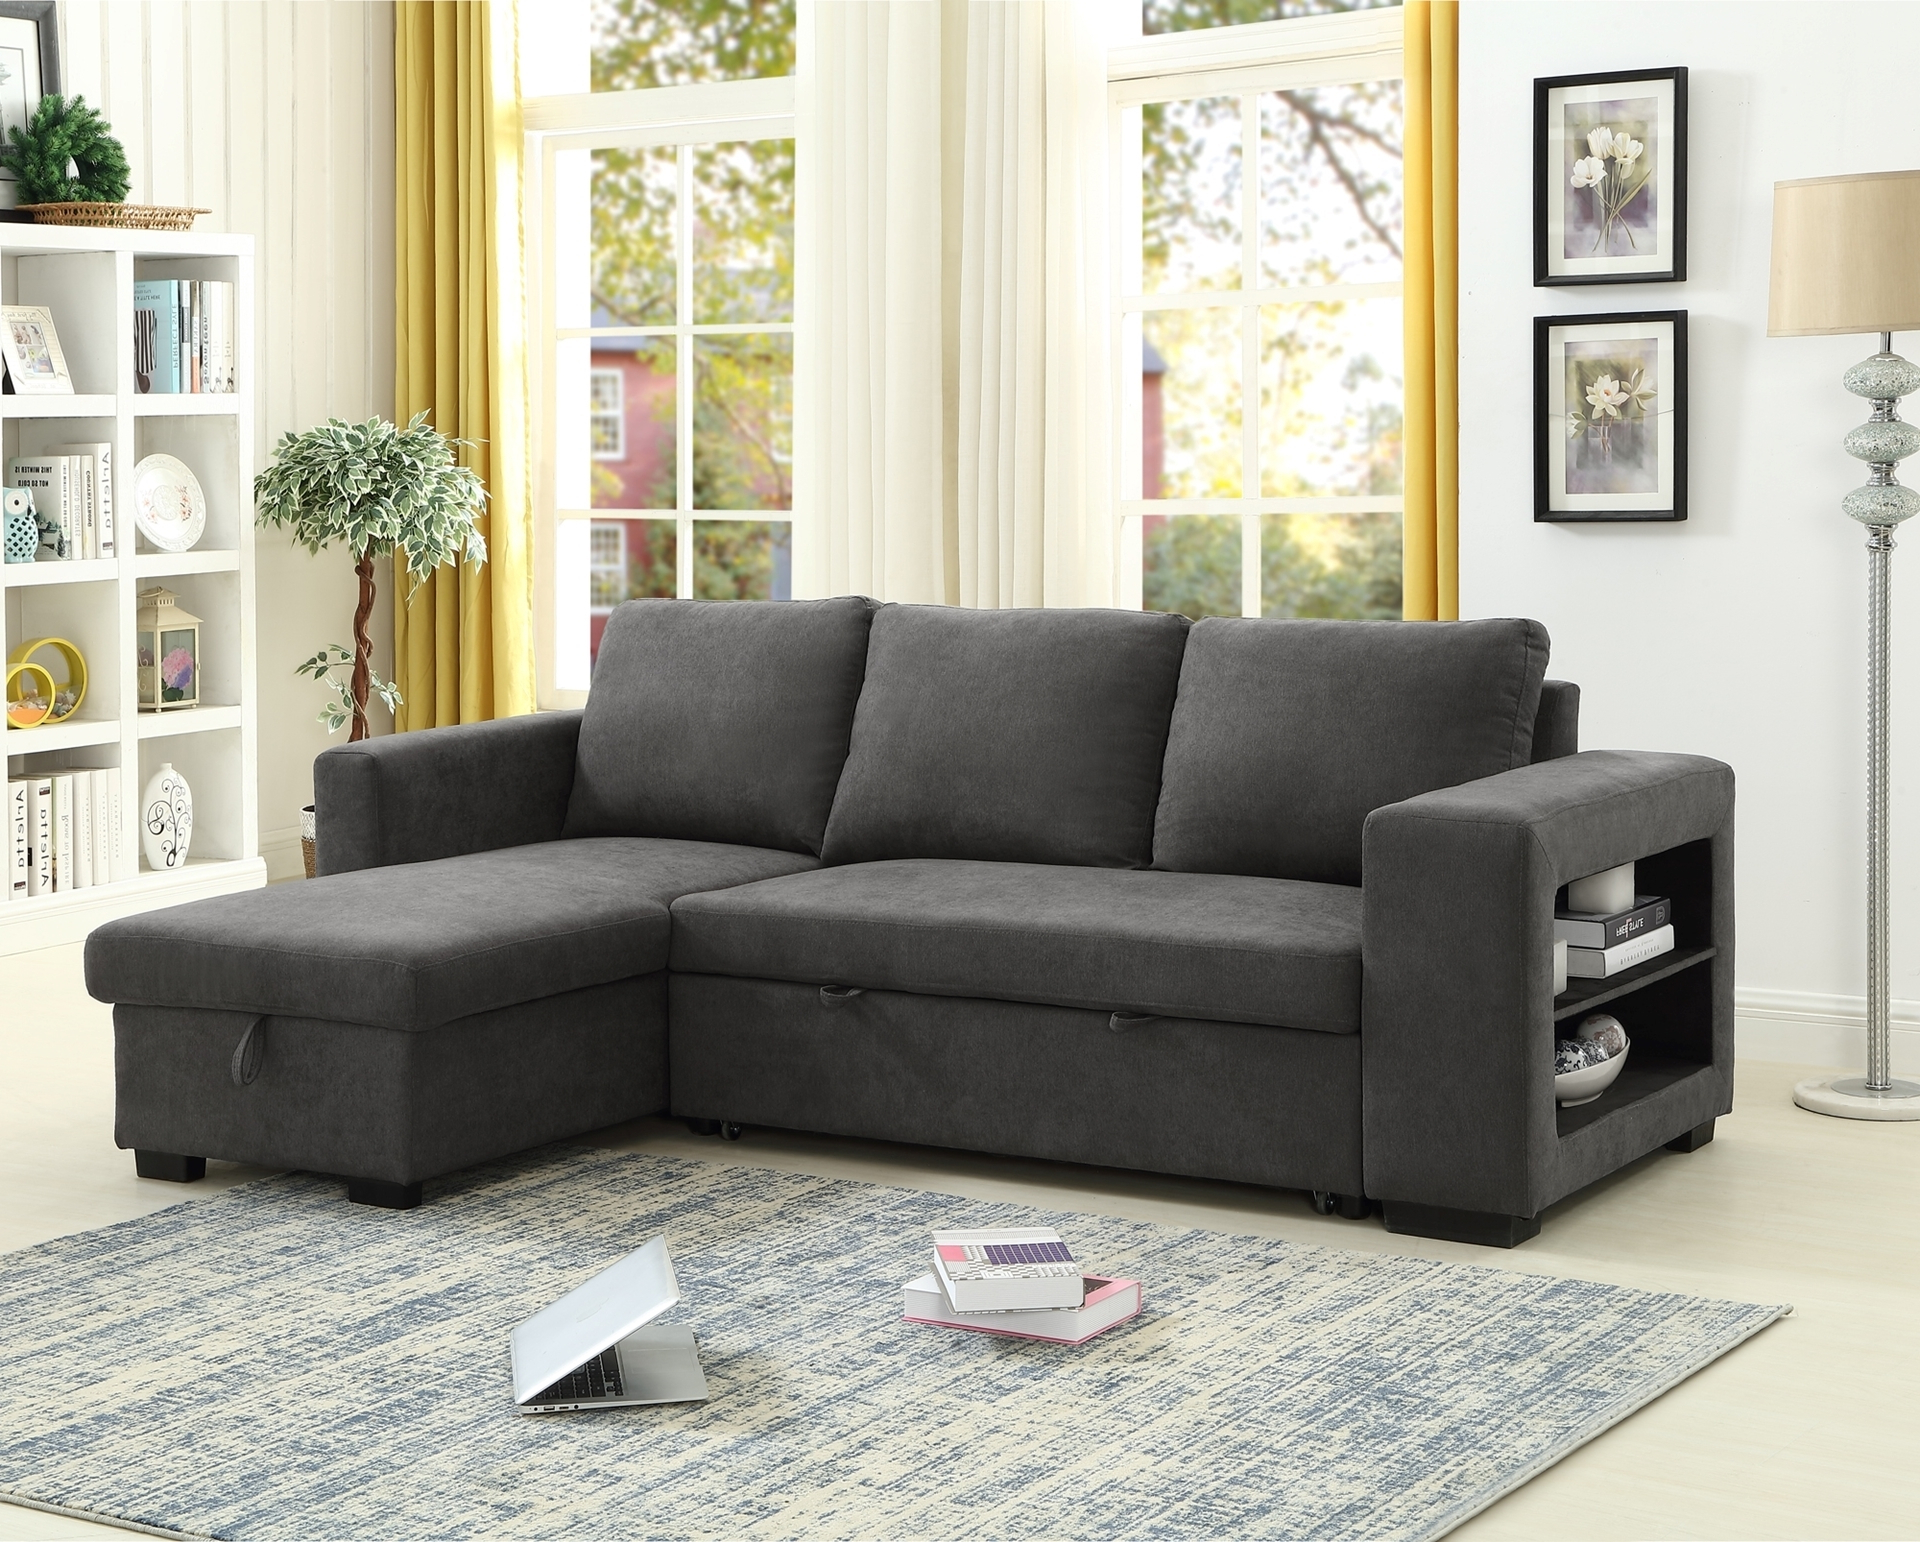 Most Current Lucena Reversible Sectional Sofa/Sofa Bed With Storage For Palisades Reversible Small Space Sectional Sofas With Storage (View 6 of 25)